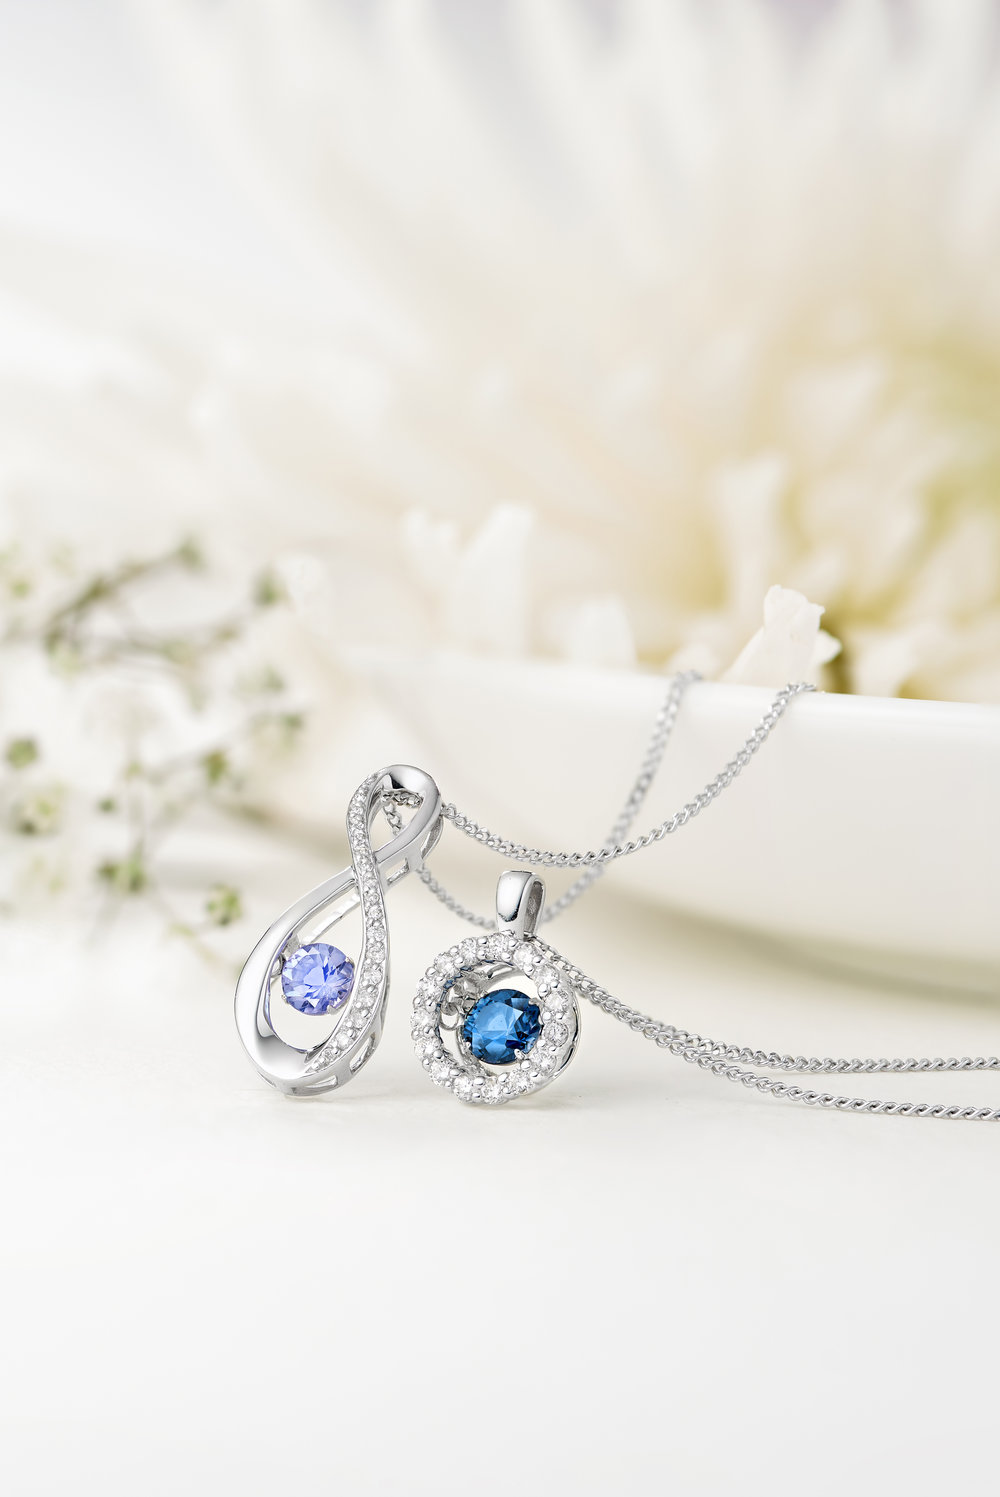 Add a splash of sophisticated colour with our Dance by Beaverbrooks 9ct White Gold Blue Topaz Diamond Pendantand the 9ct White Gold Sapphire and Diamond Pendant.